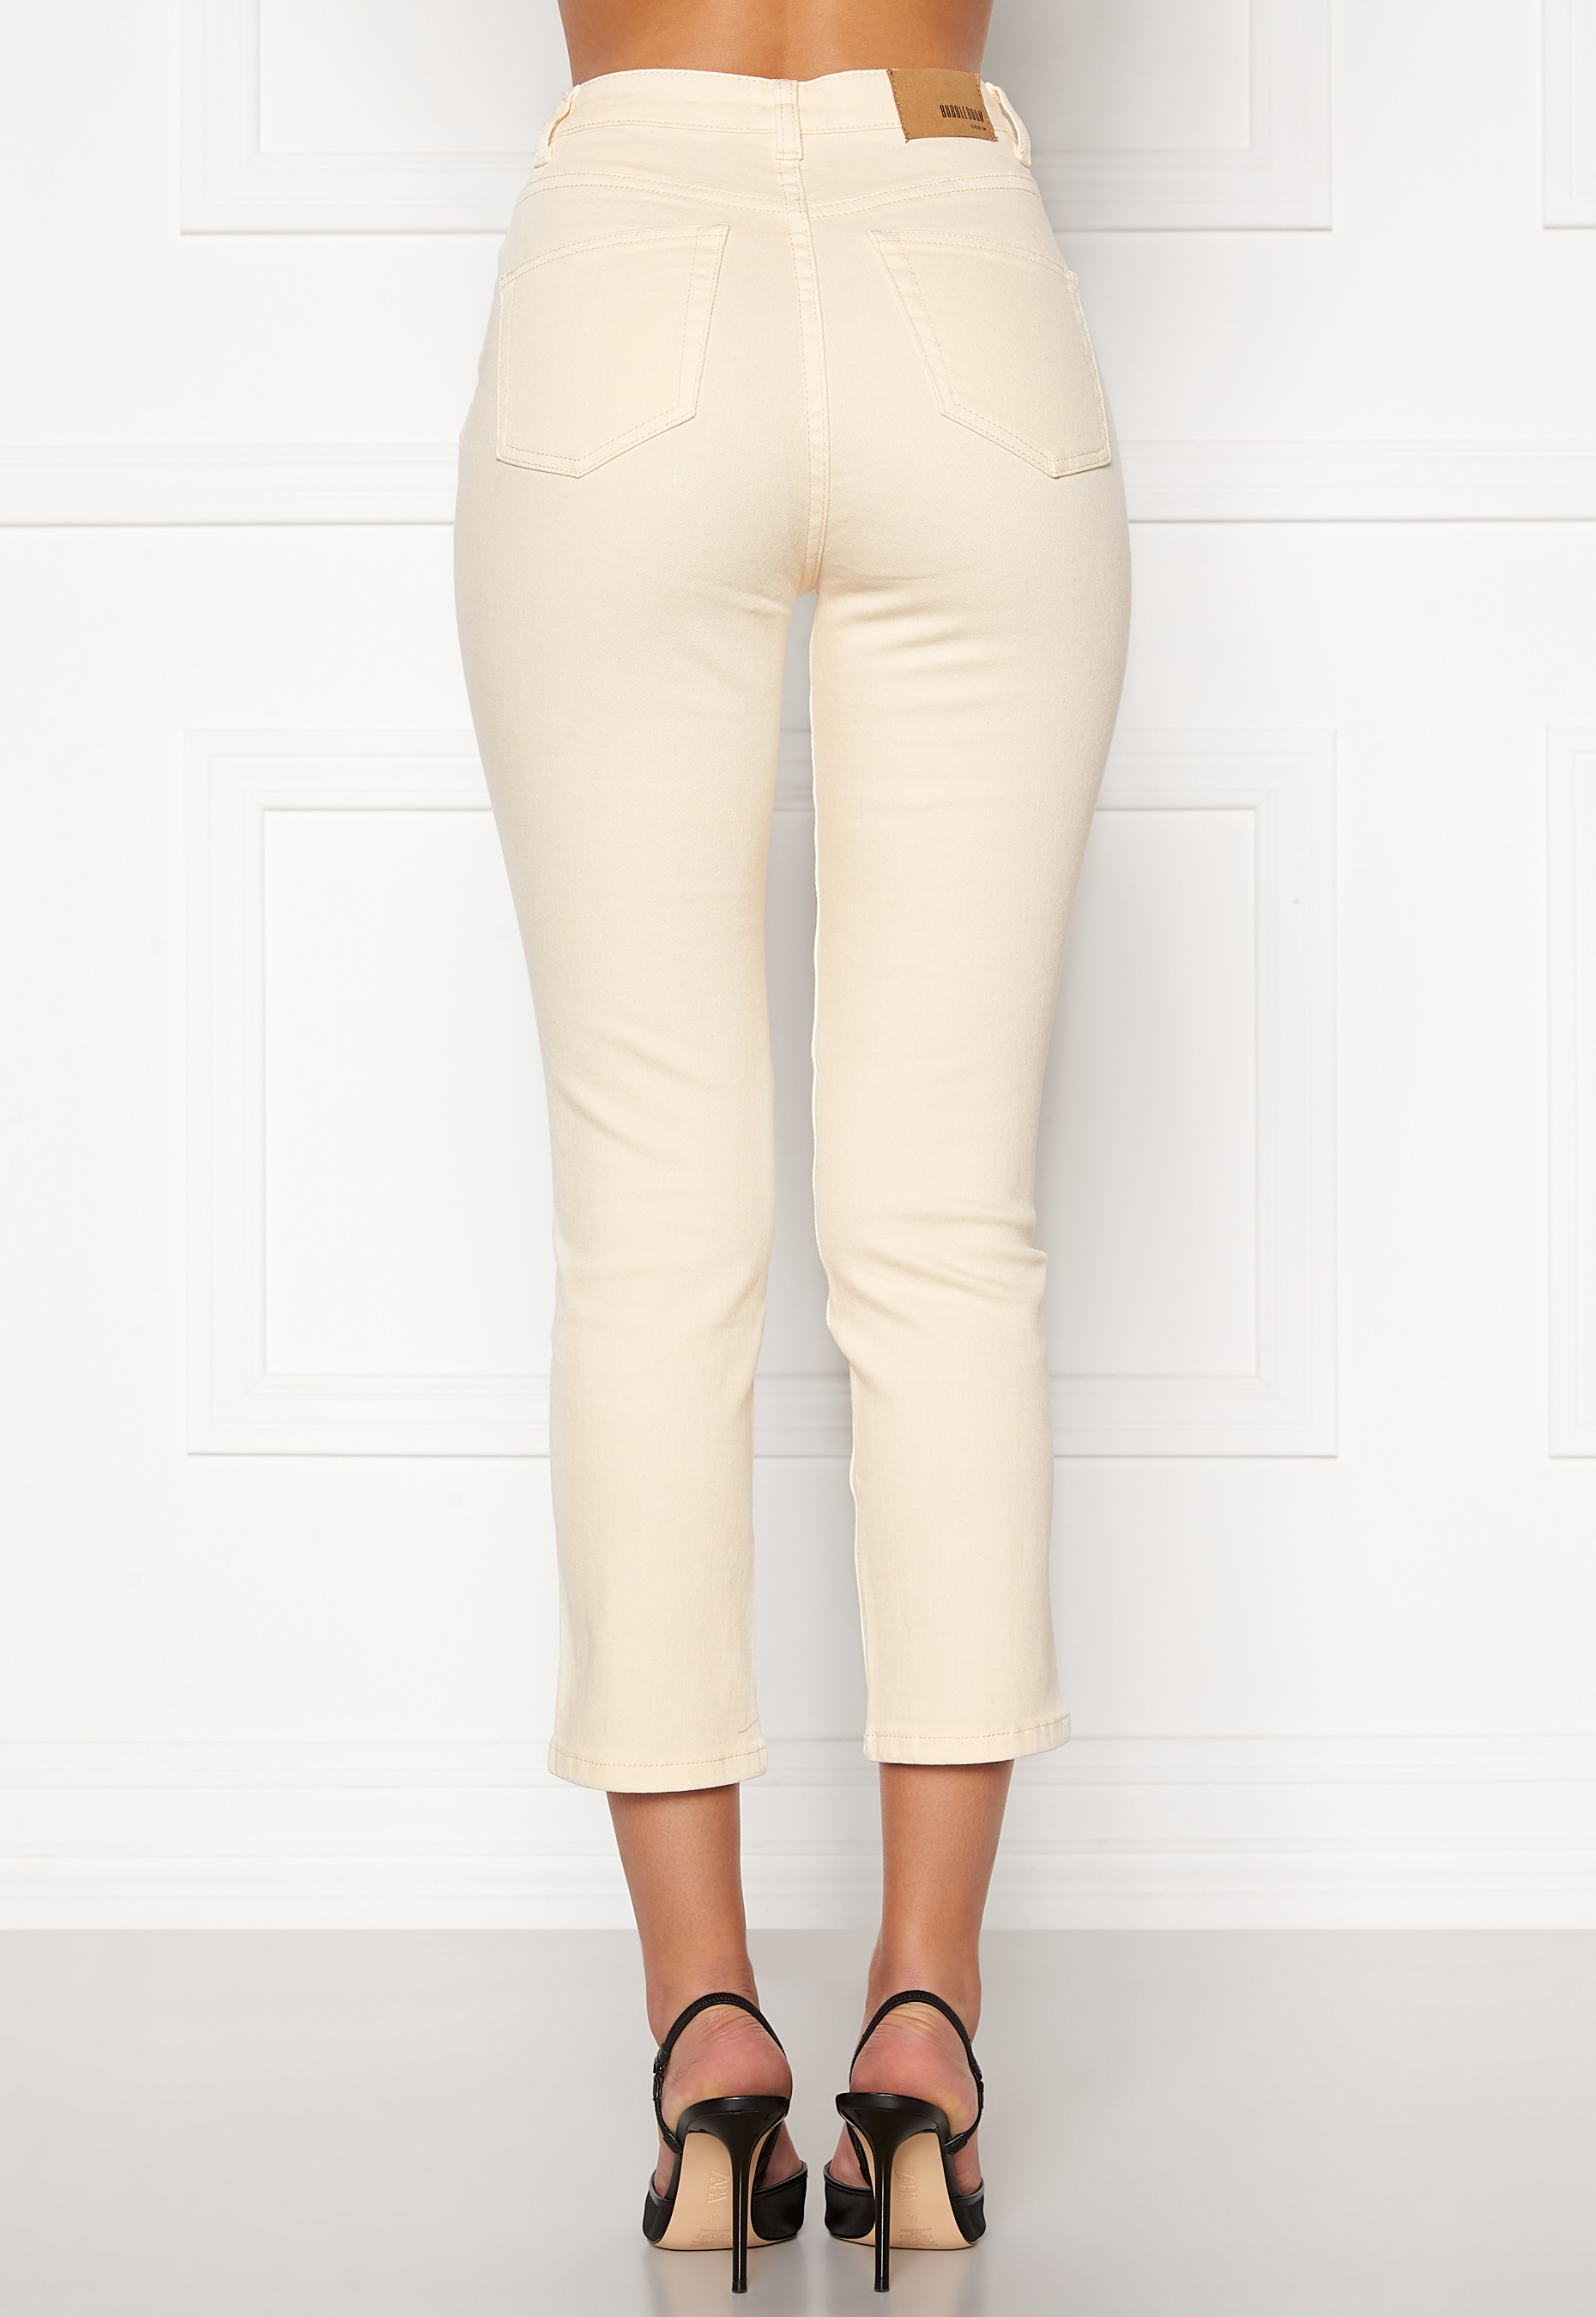 bubbleroom-katy-high-waist-semi-stretch-jeans_11